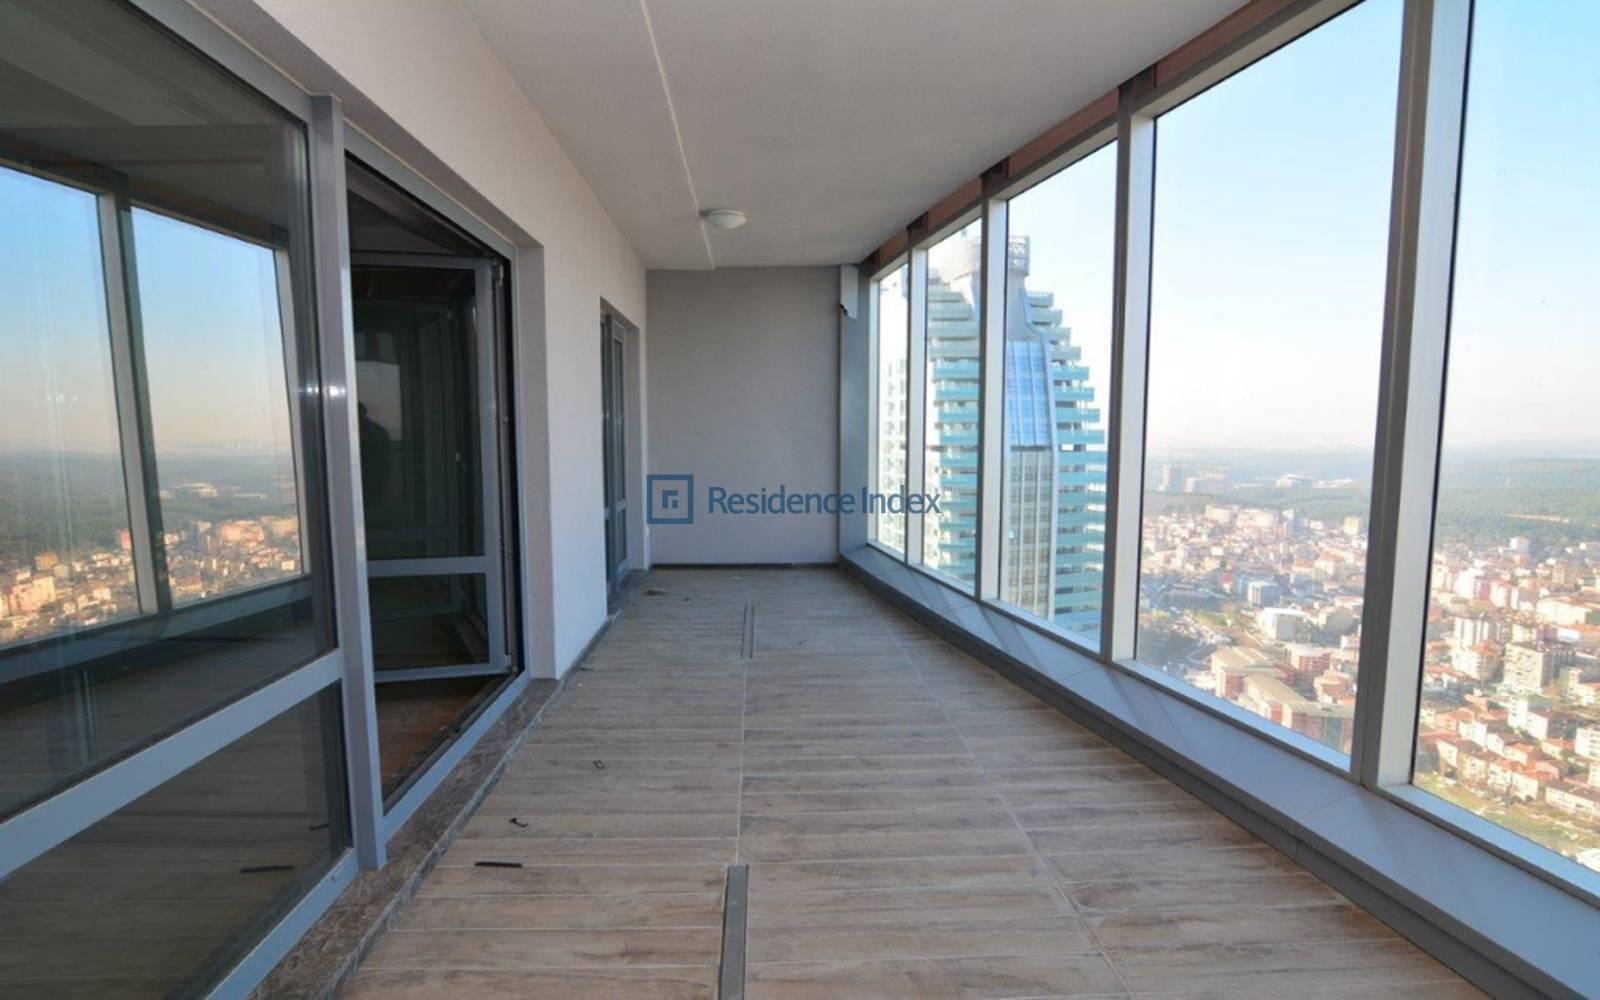 1453 Maslak - 1 + 1 Apartment For Sale with High Floor View